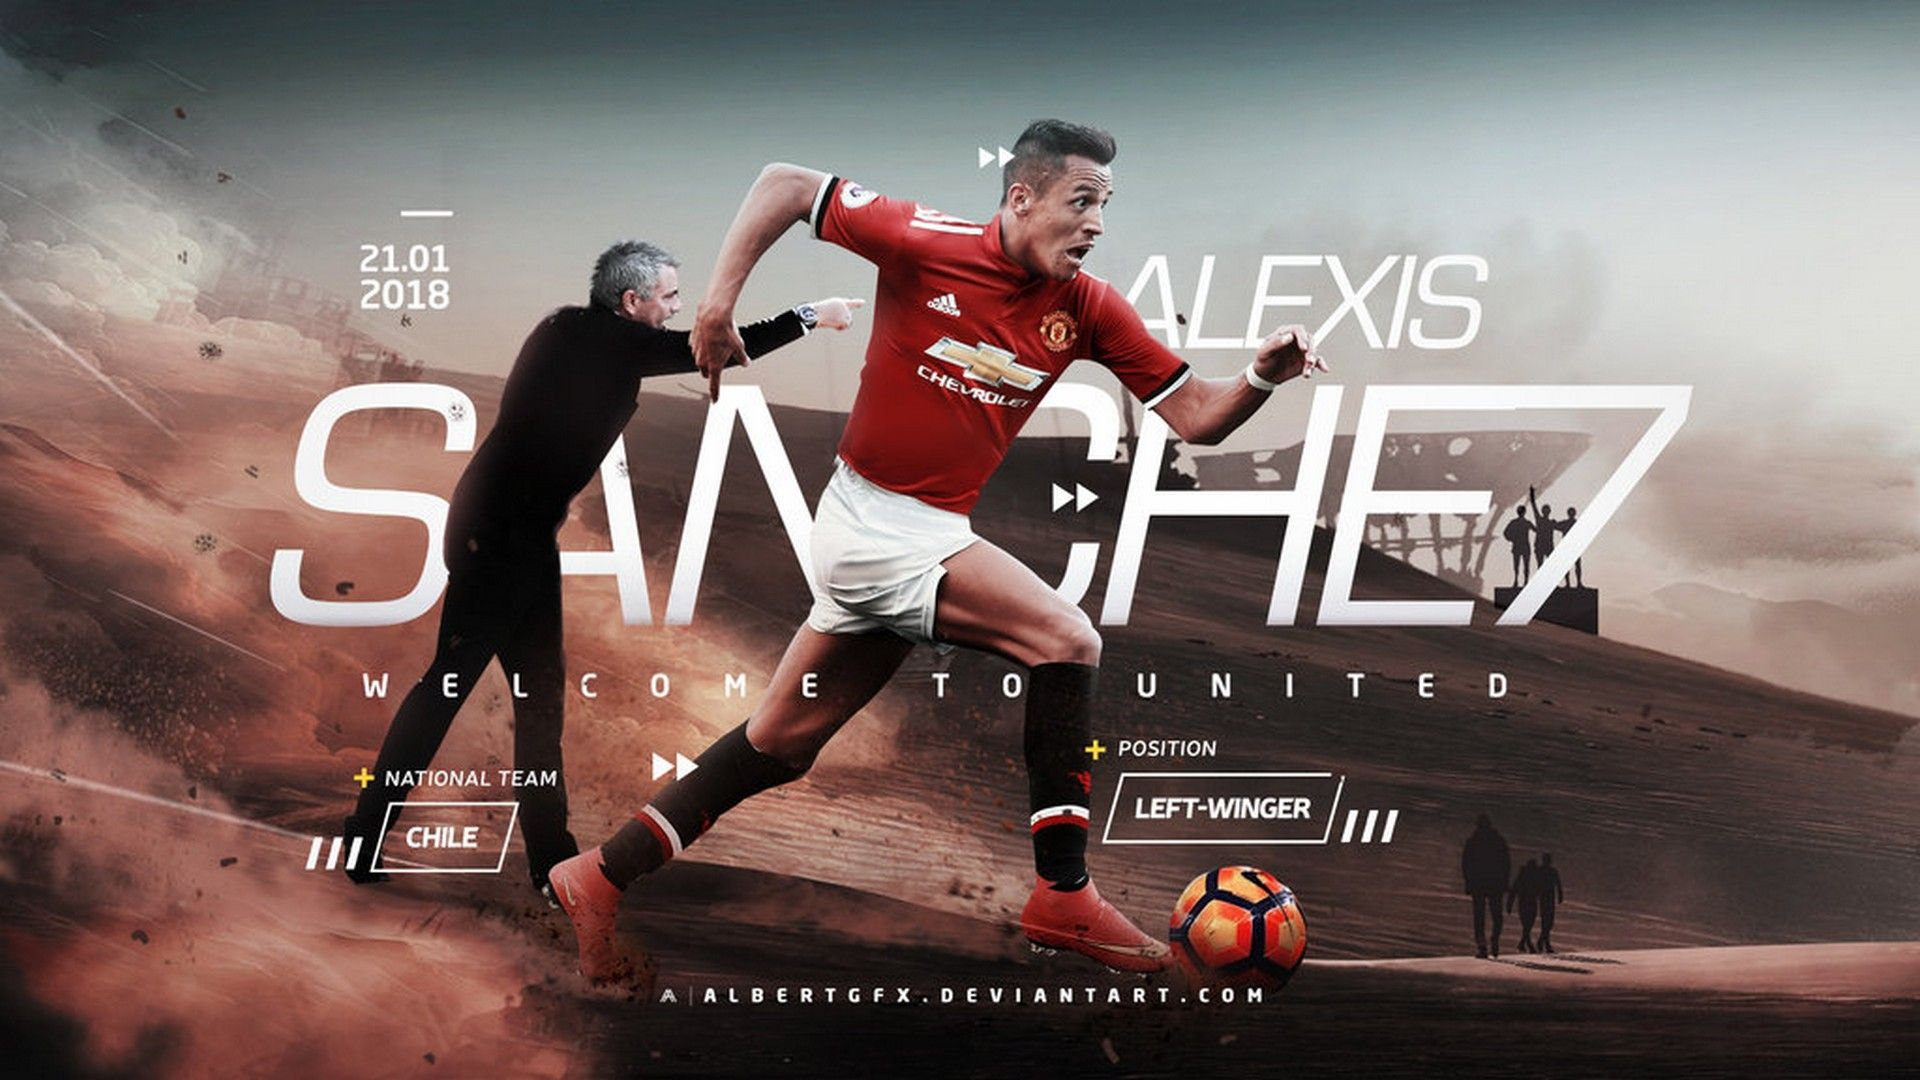 Alexis Sanchez 7 Manchester United Wallpaper Hd 2020 Live Wallpaper Hd Manchester United Wallpaper Alexis Sanchez Manchester United Manchester United